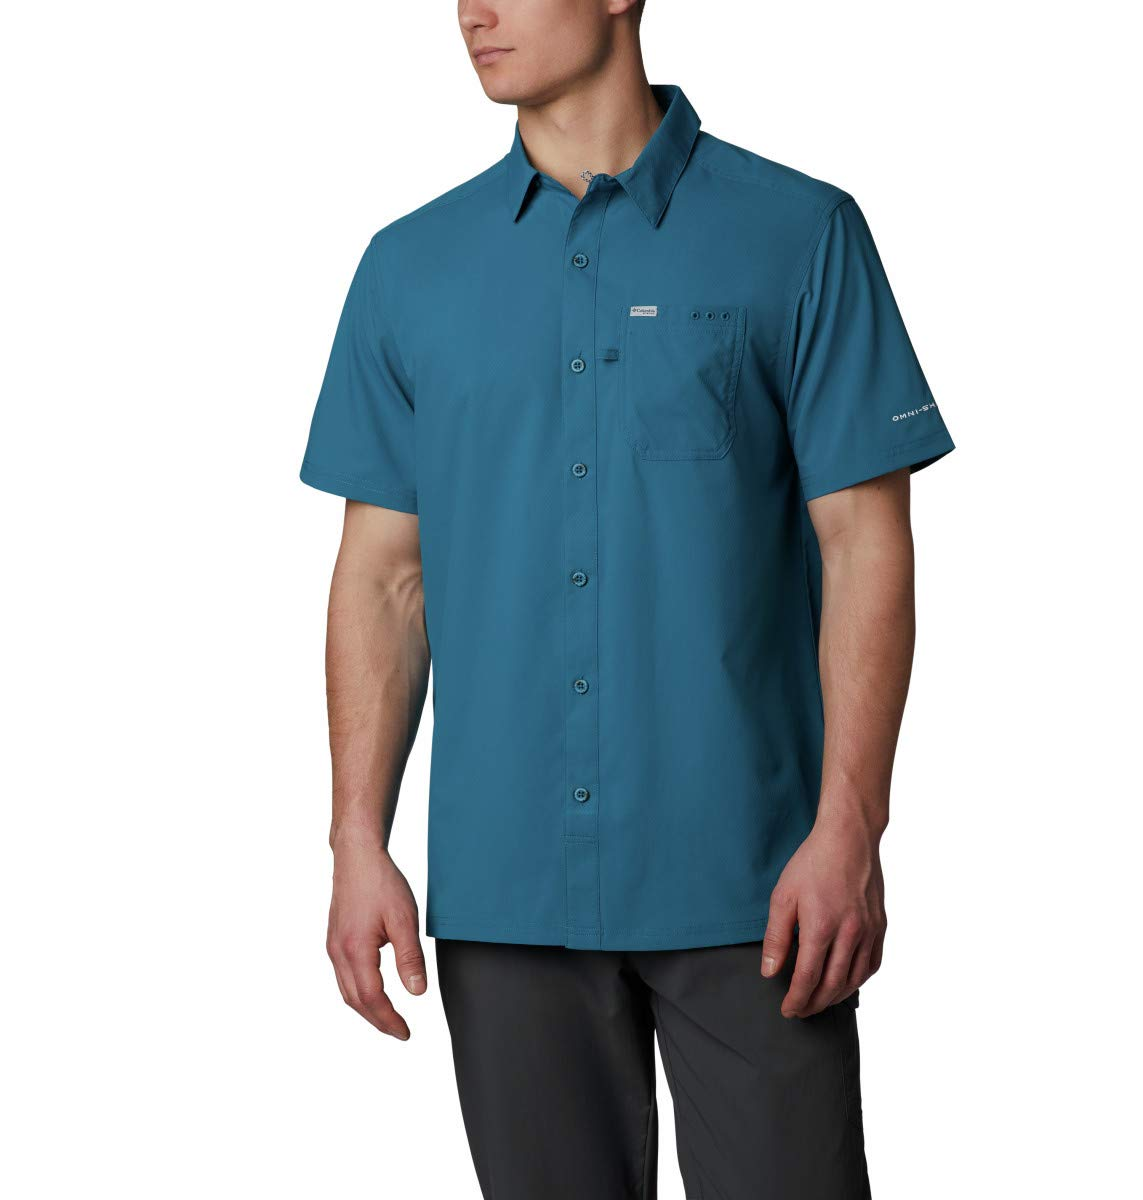 Columbia Men's Slack Tide Camp Shirt, Dark Turquoise, Small by Columbia